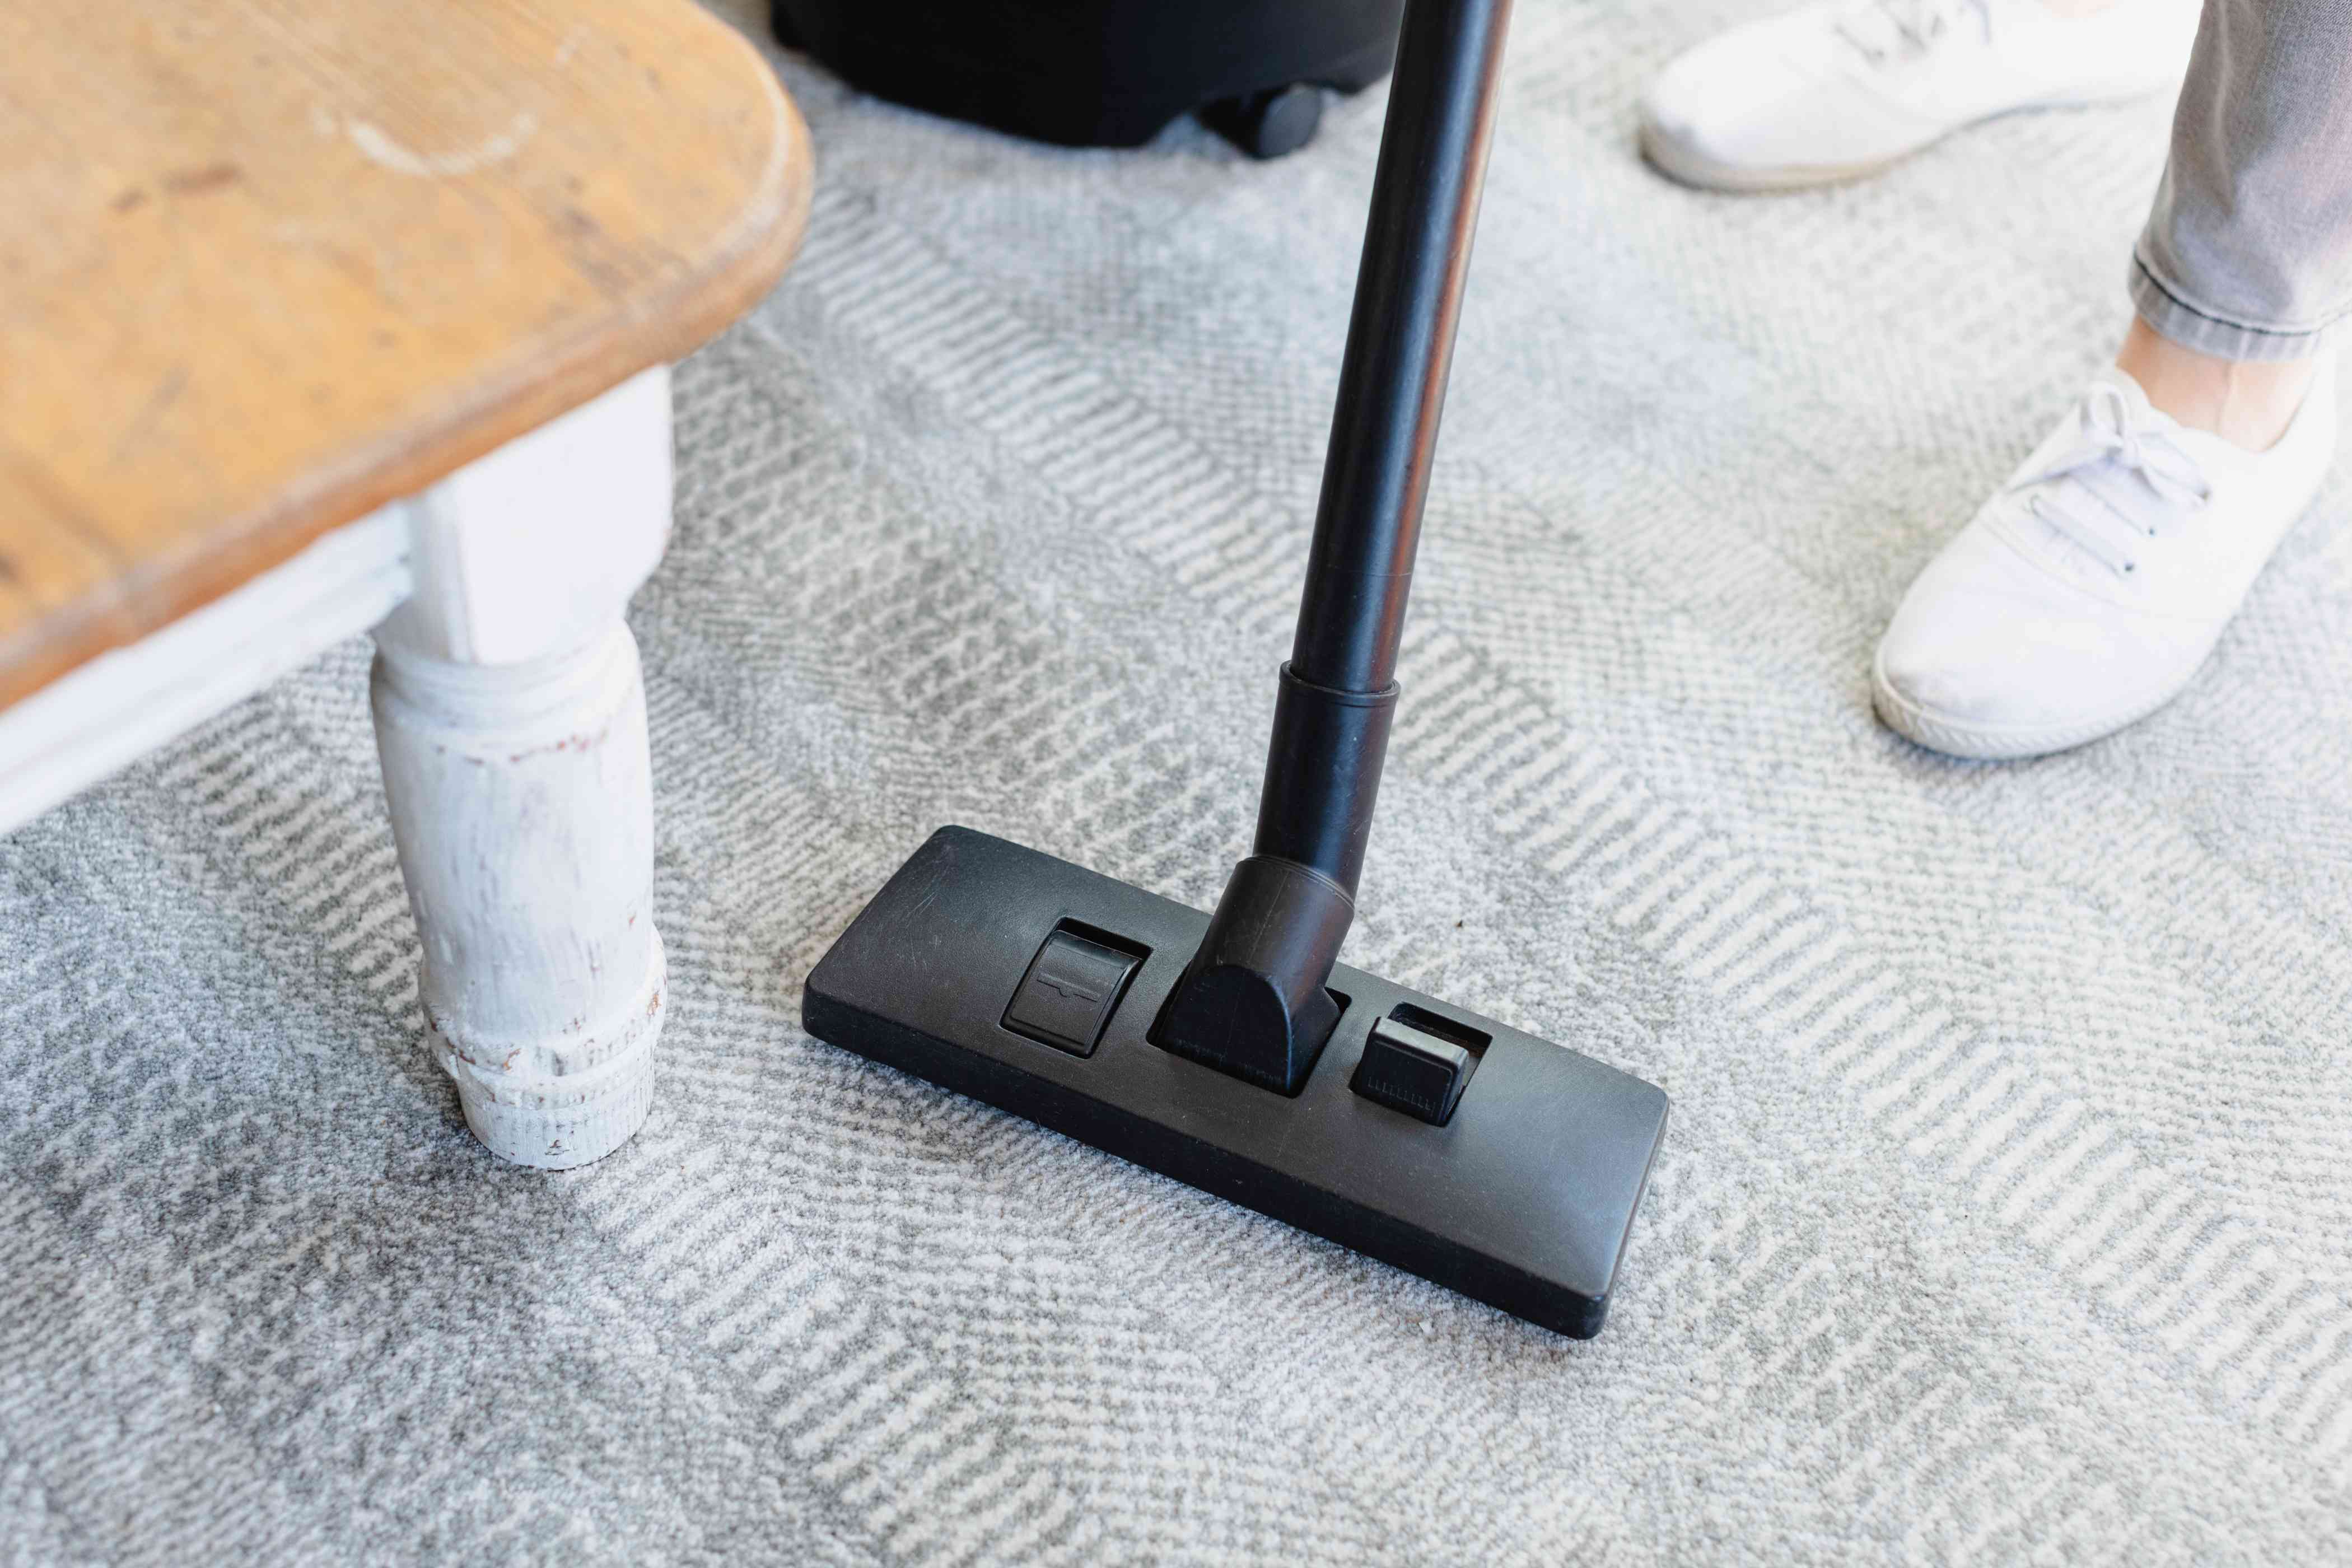 Upright vacuum cleaner cleaning carpet around table leg